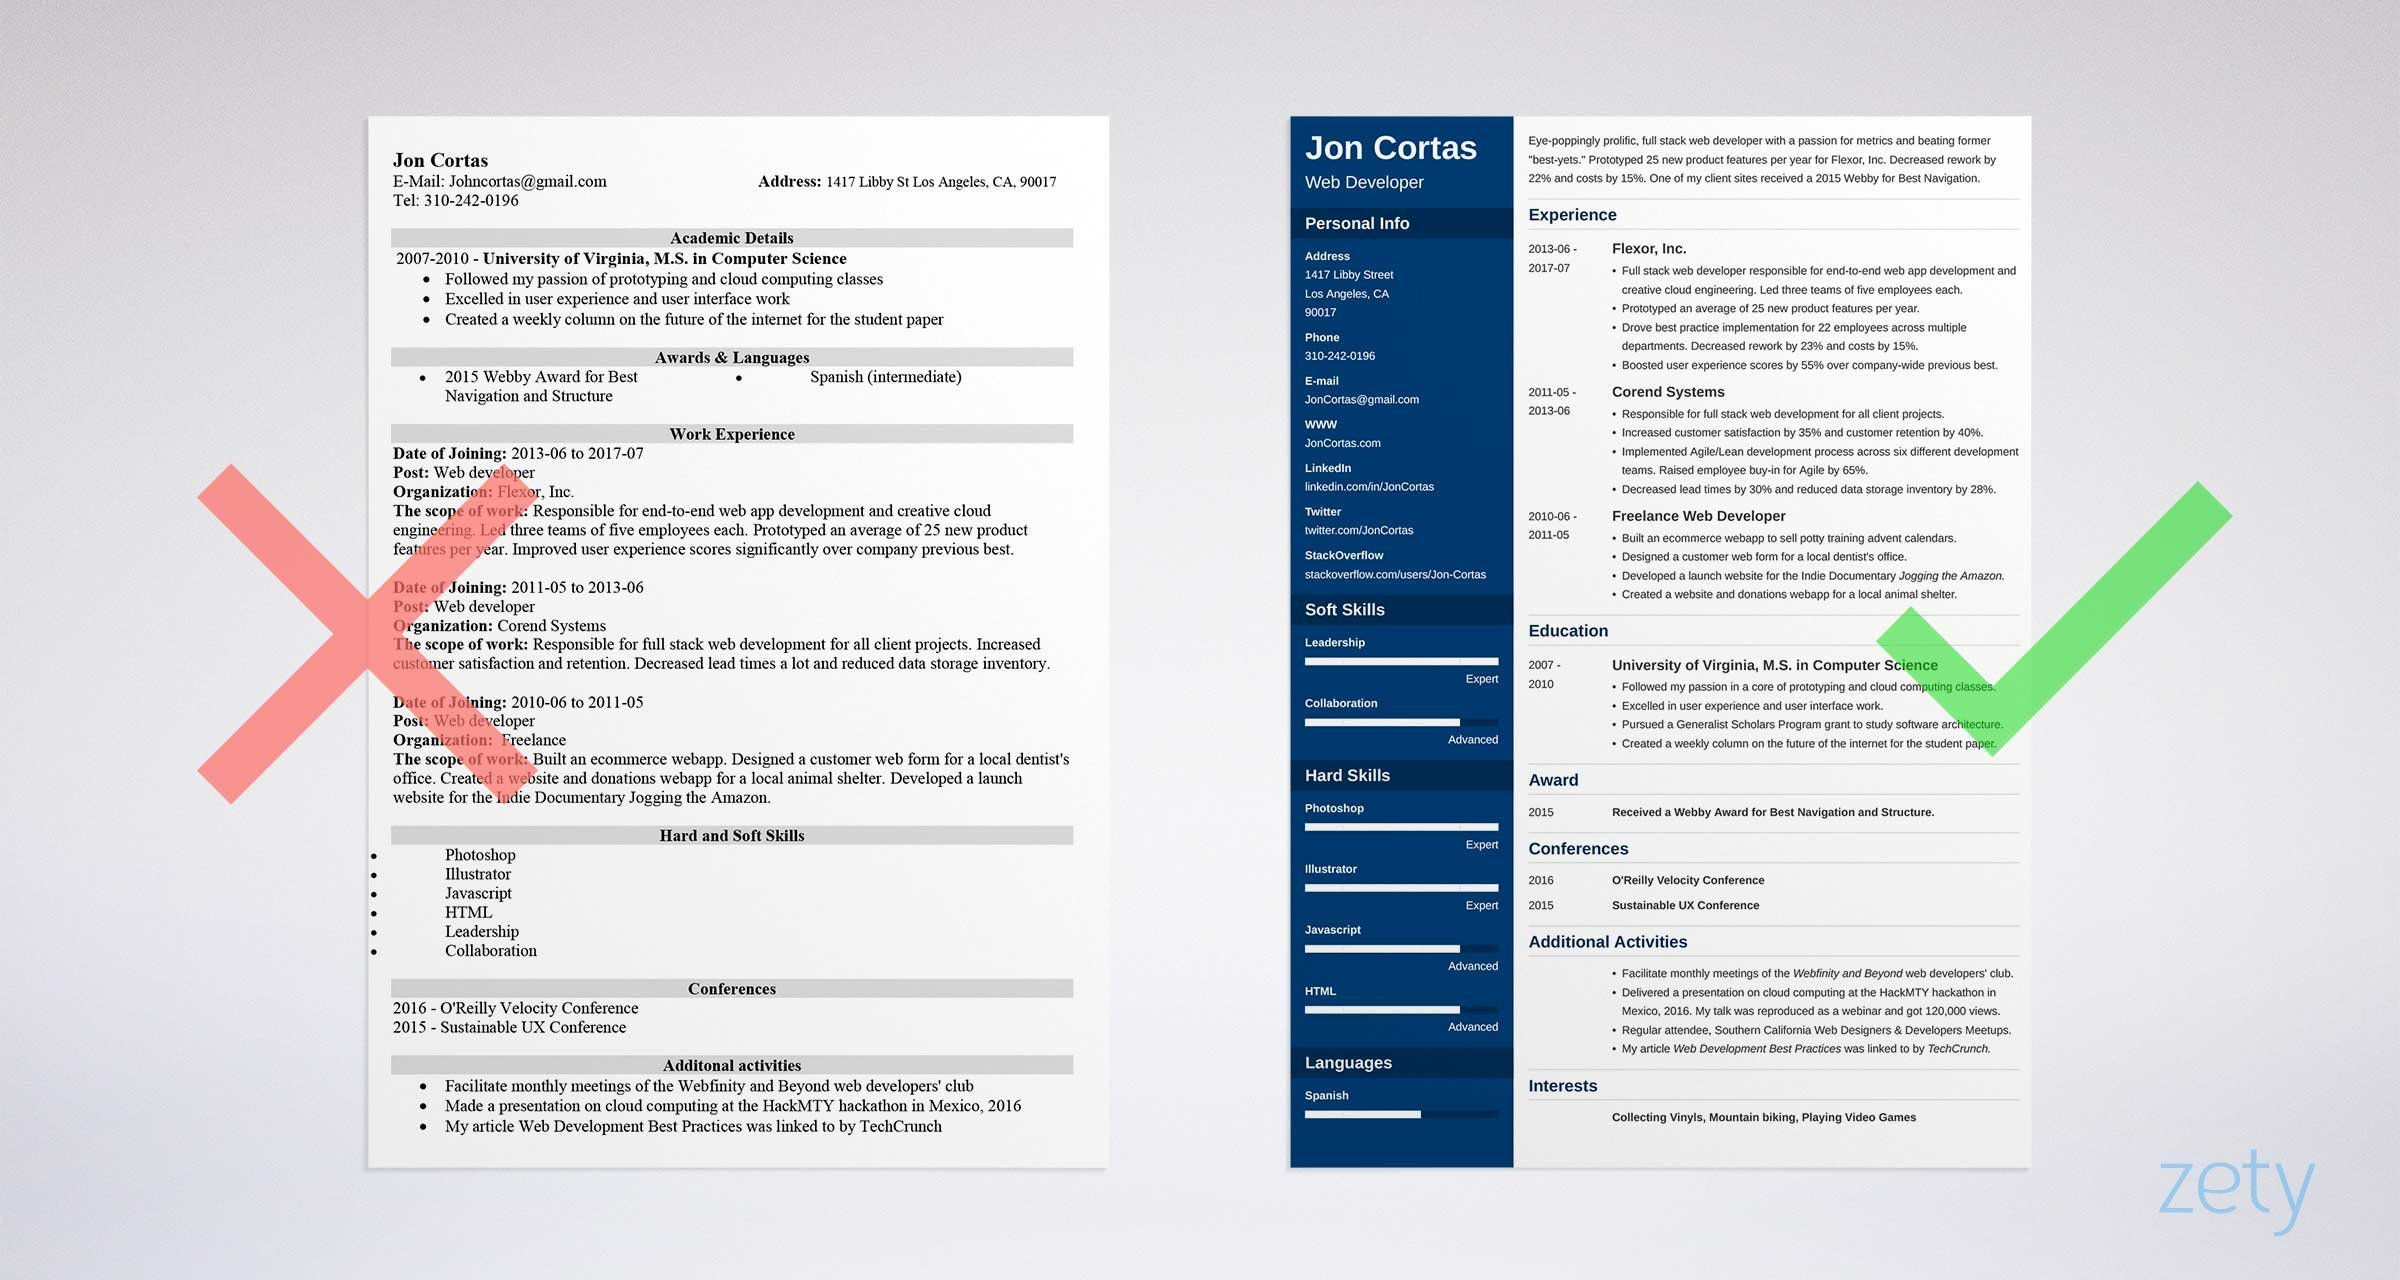 Downloadable Resume Templates Word Free Resume Templates for Word 15 Cv Resume formats to